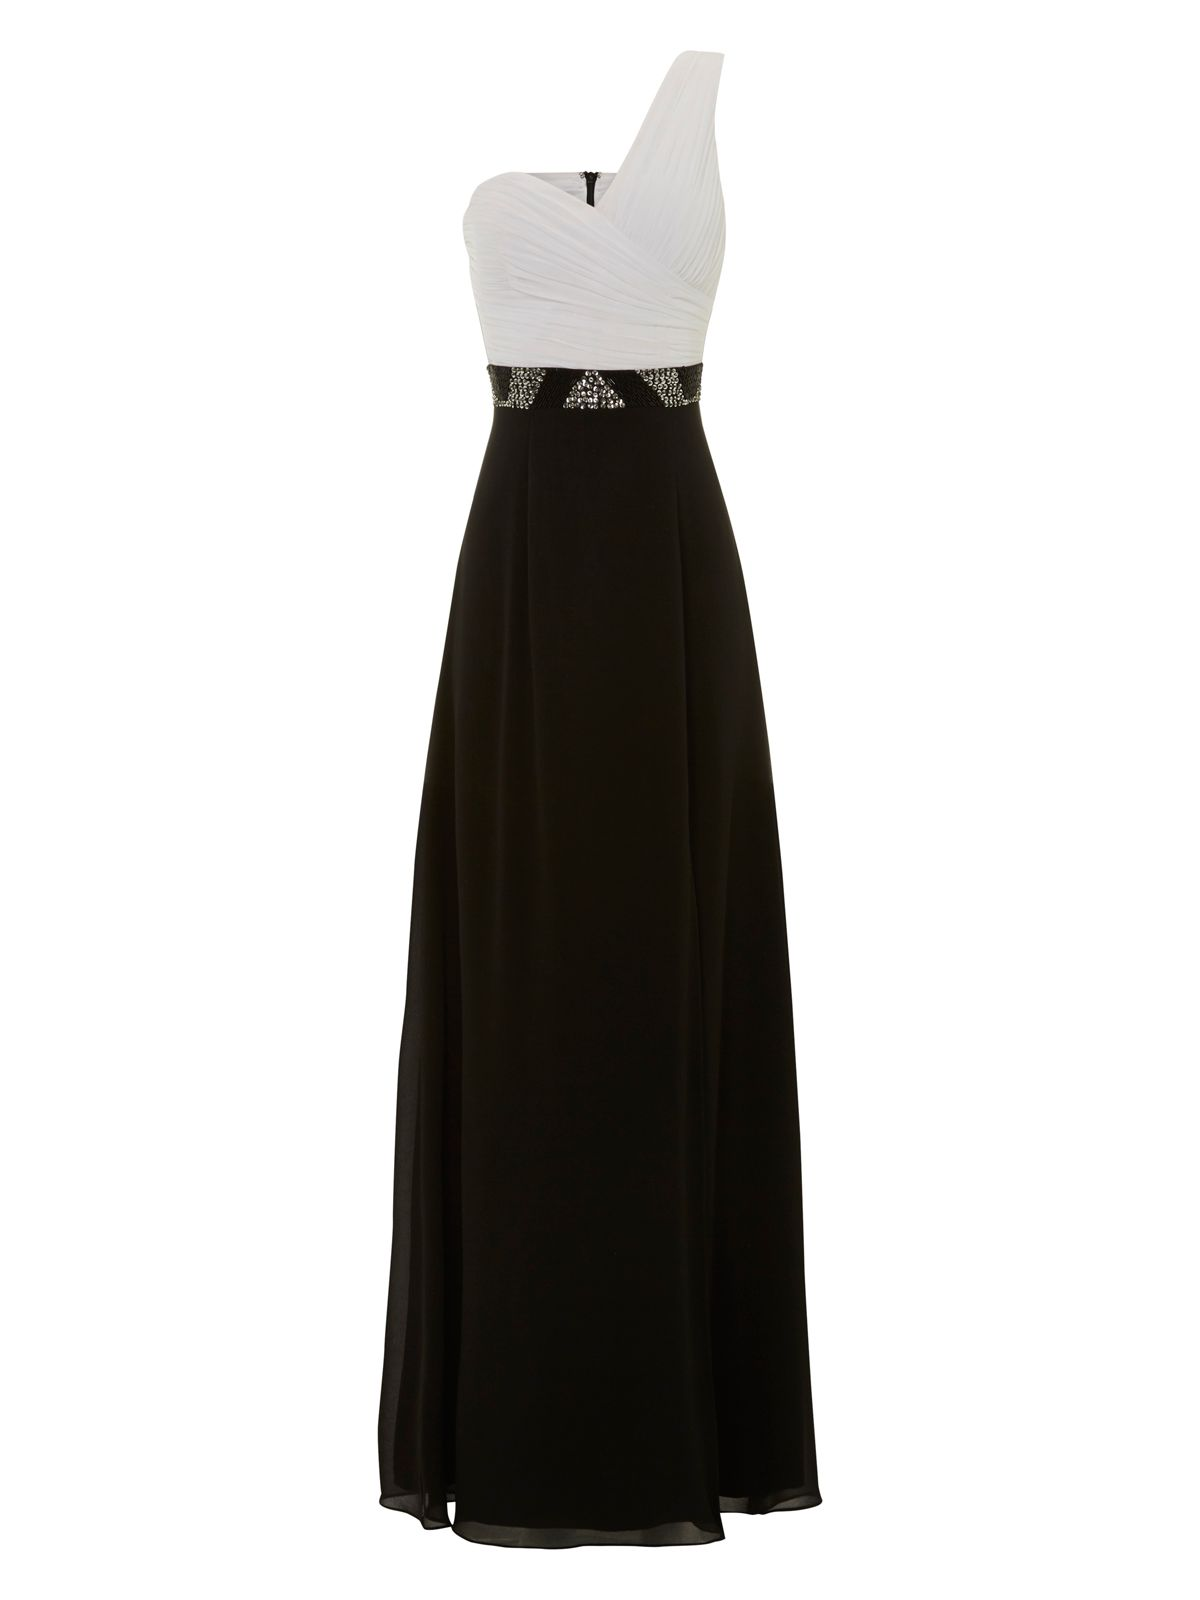 Monochrome one shoulder maxi dress